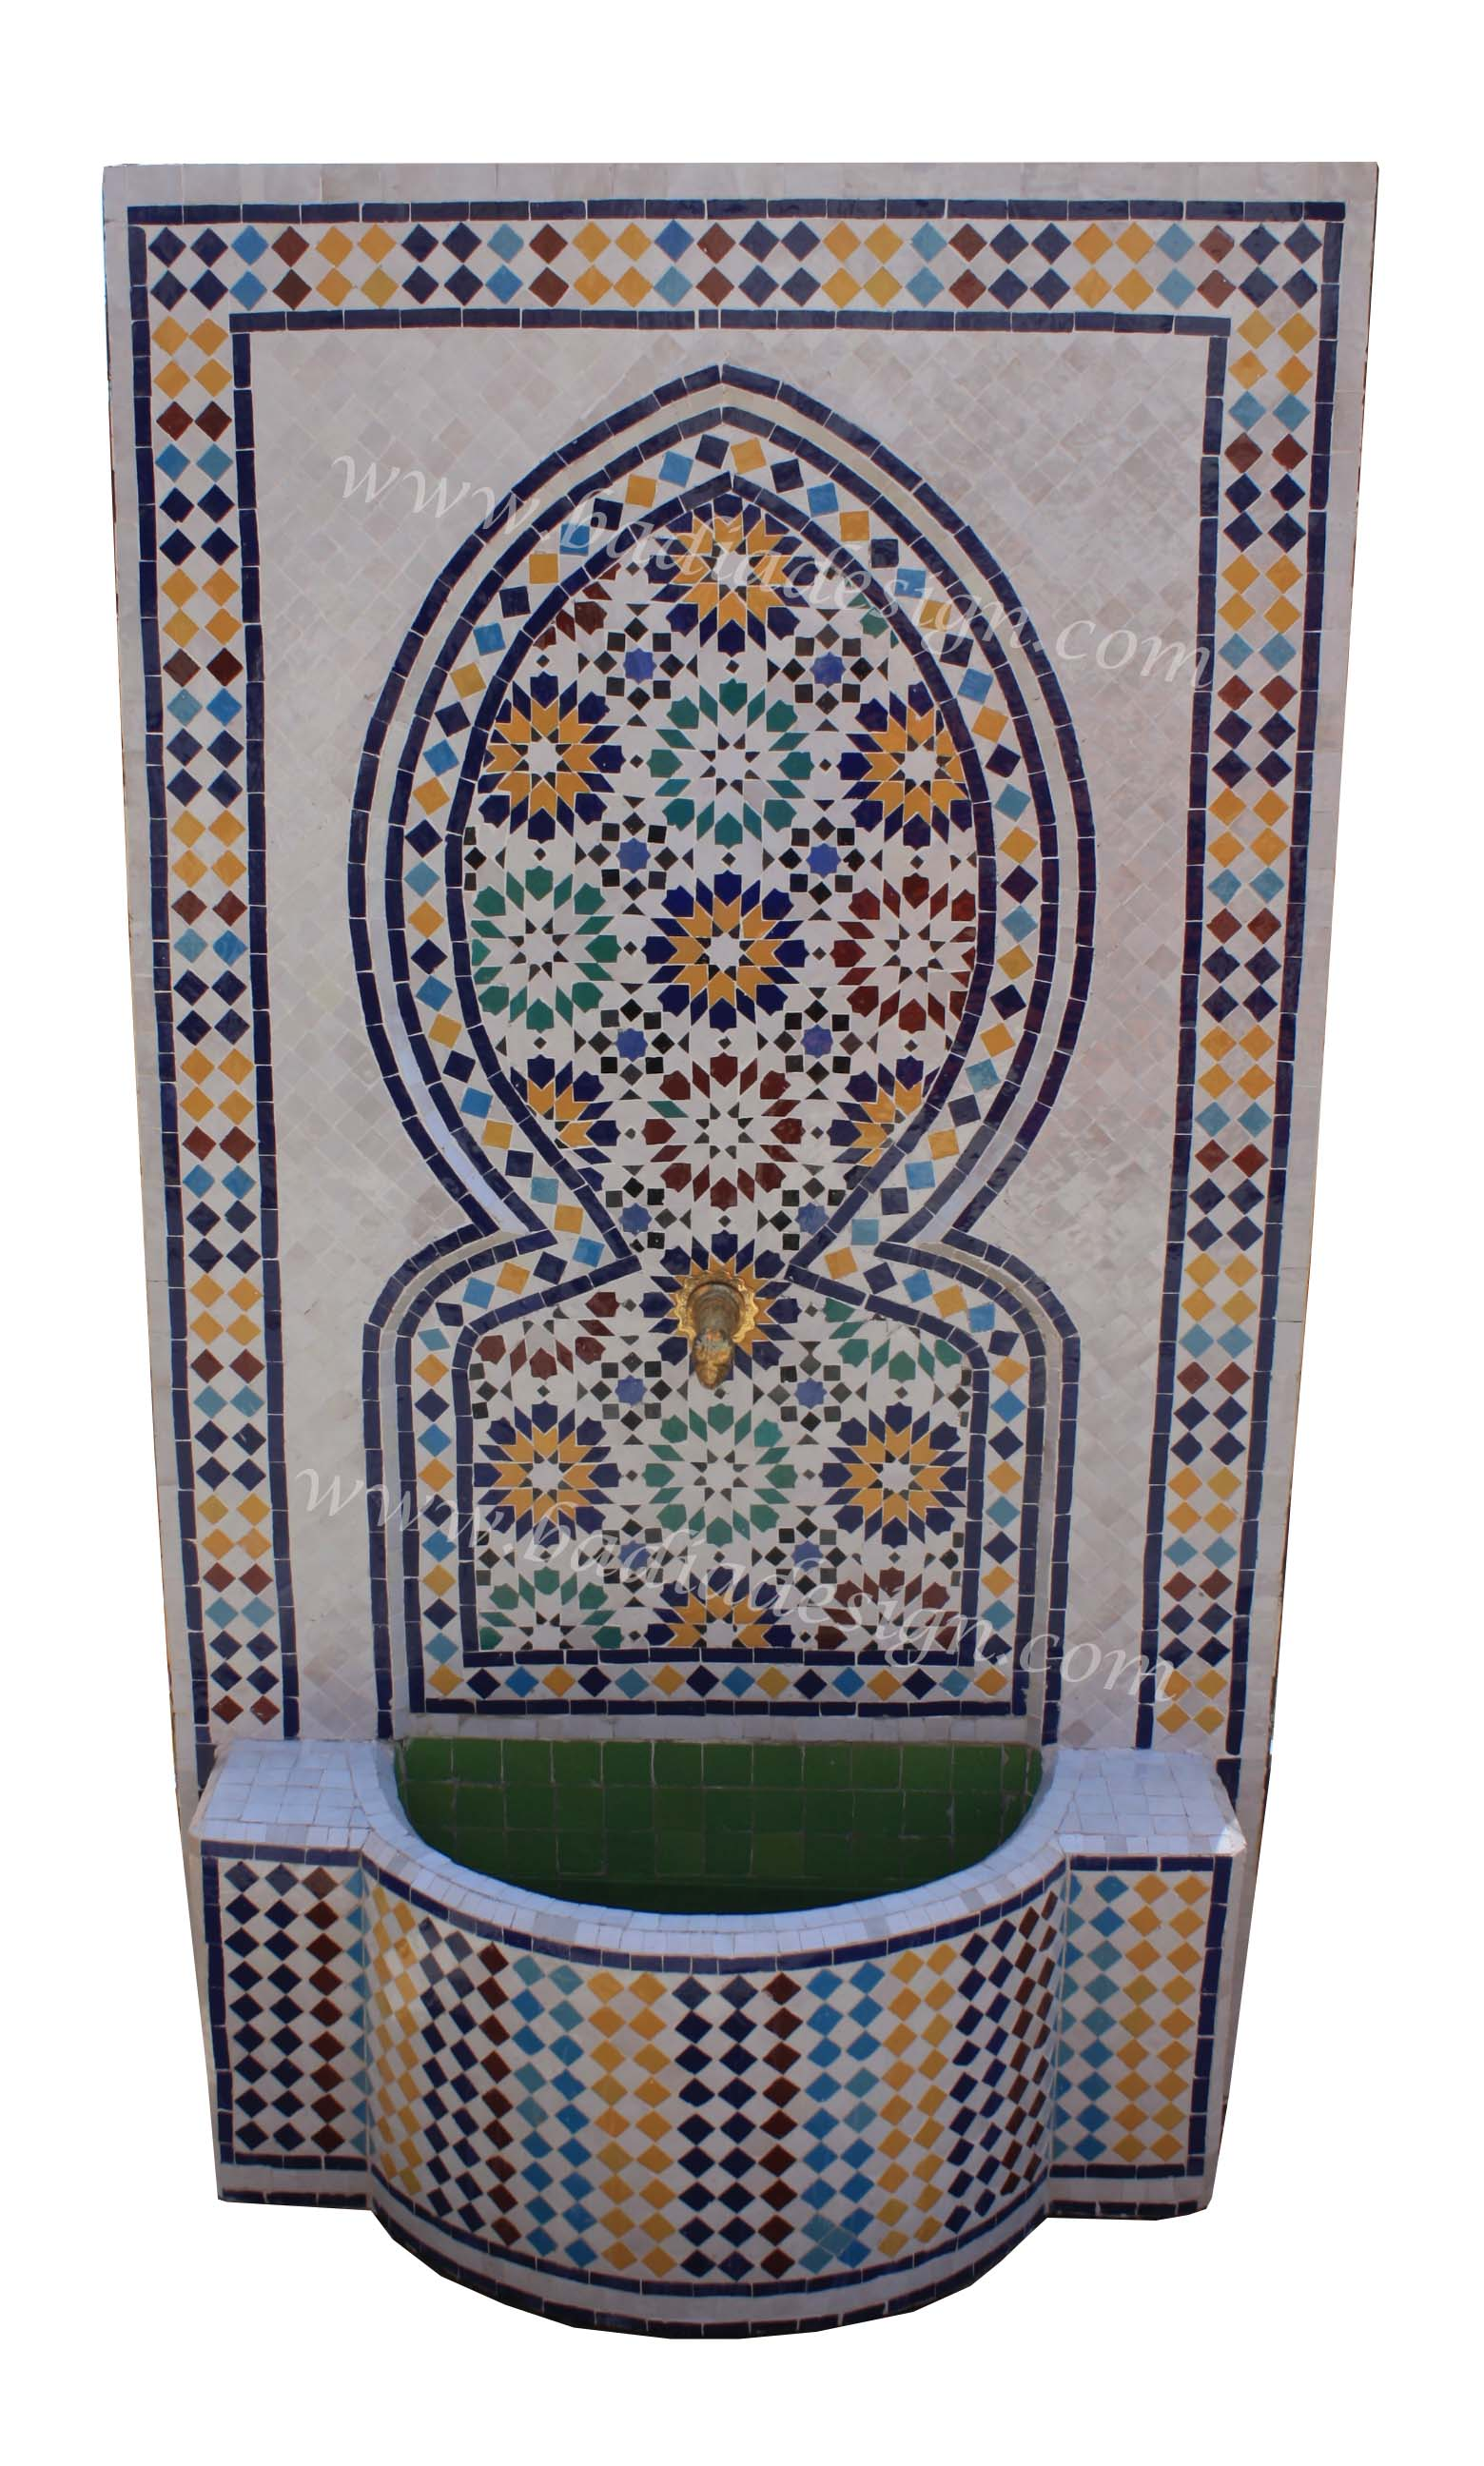 moroccan-mosaic-water-fountain-mf632.jpg